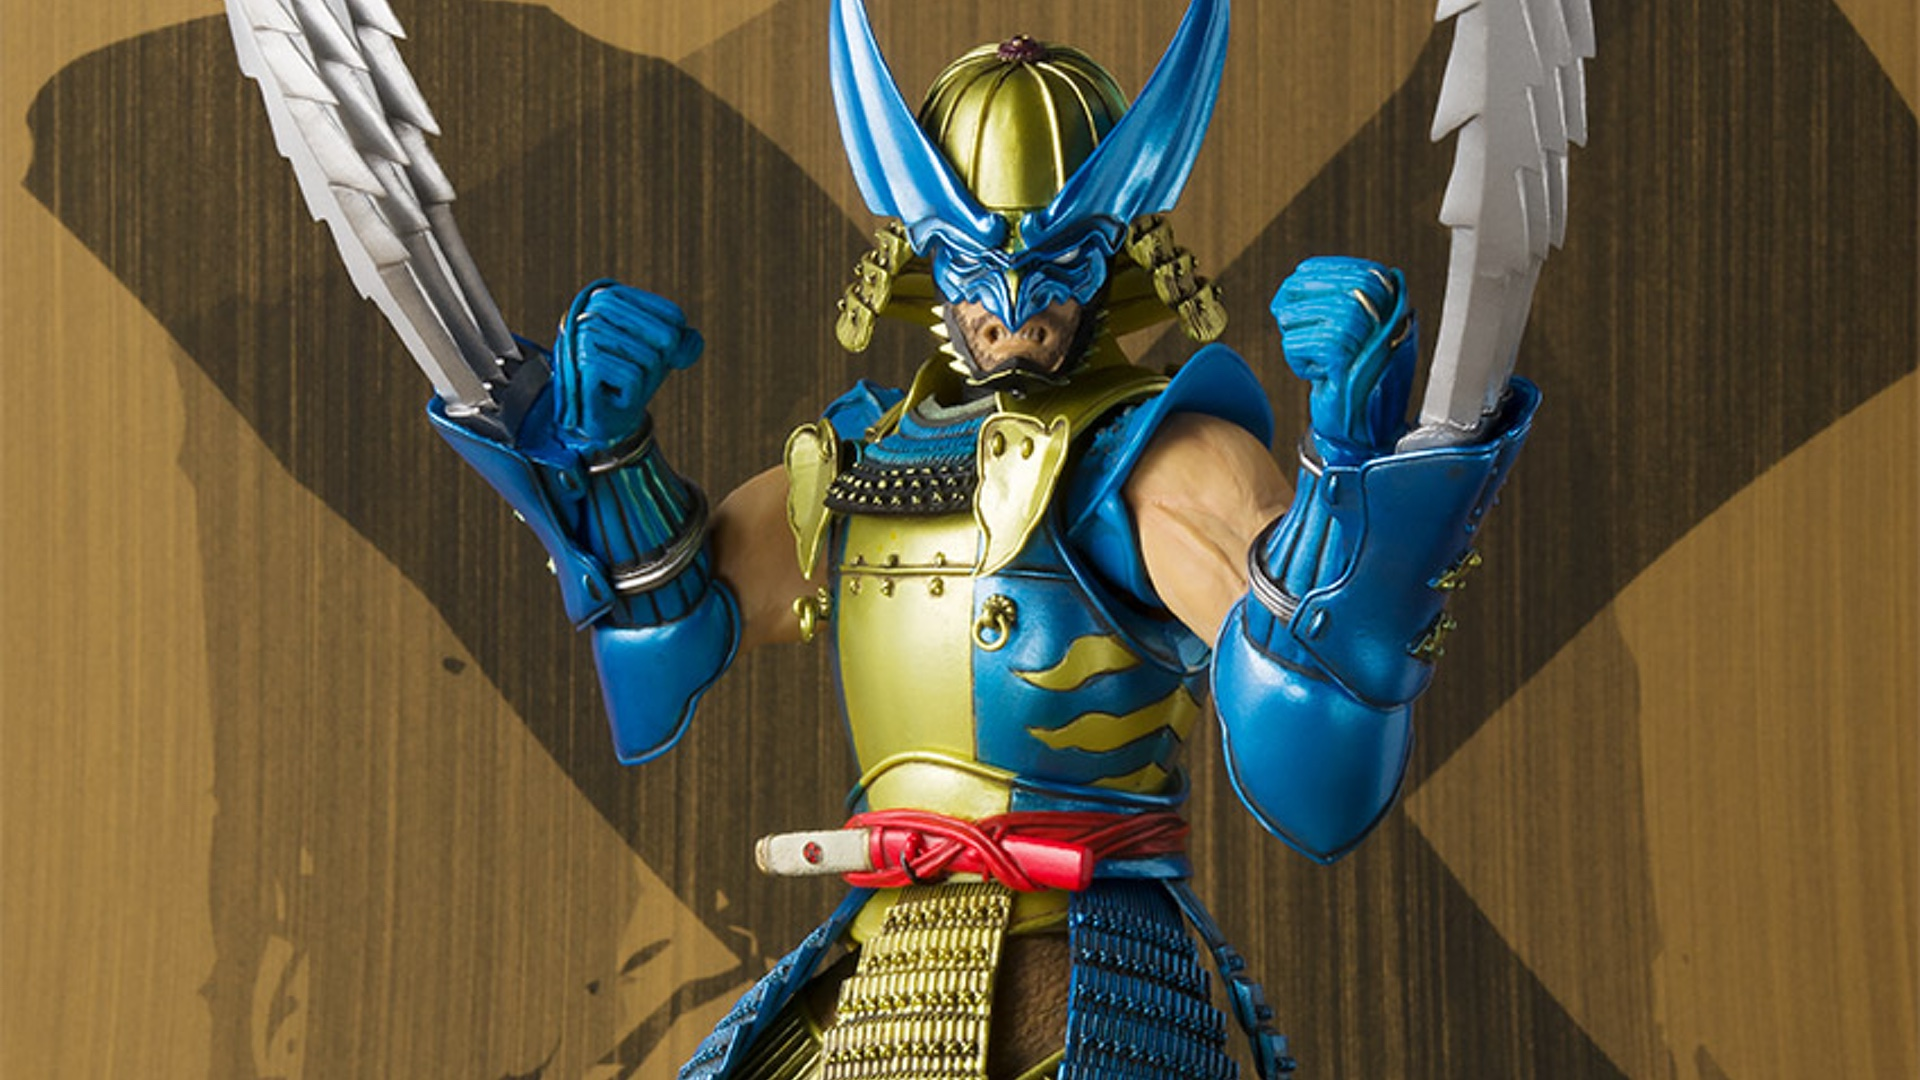 check-out-this-crazy-cool-samurai-wolverine-action-figure-social.jpg